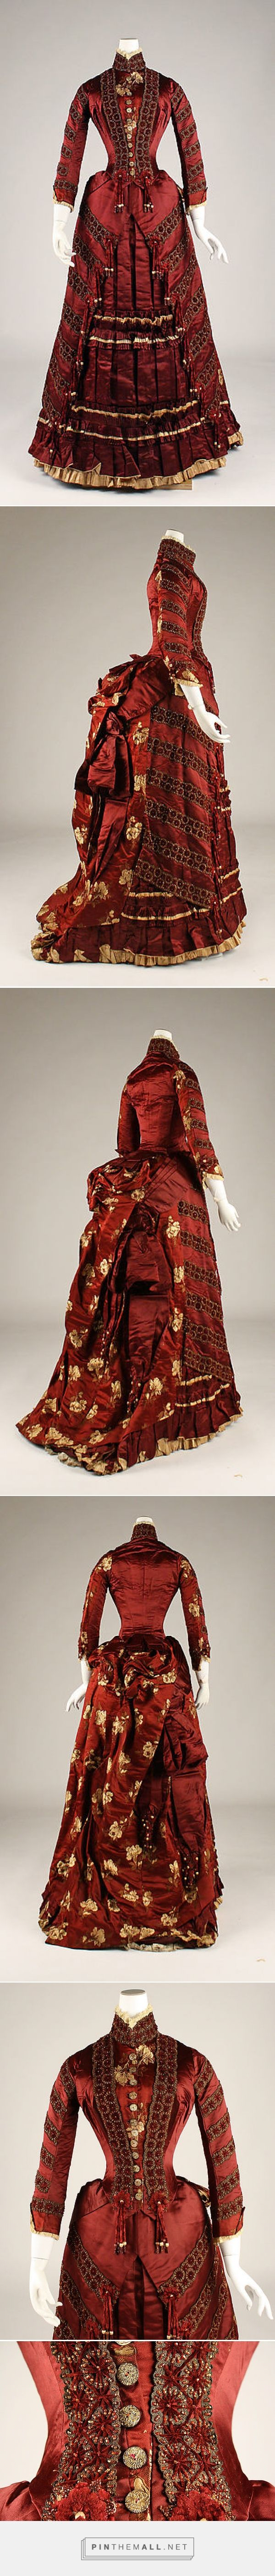 Ensemble 1879 French | The Metropolitan Museum of Art - created on 2015-04-16 22:49:56